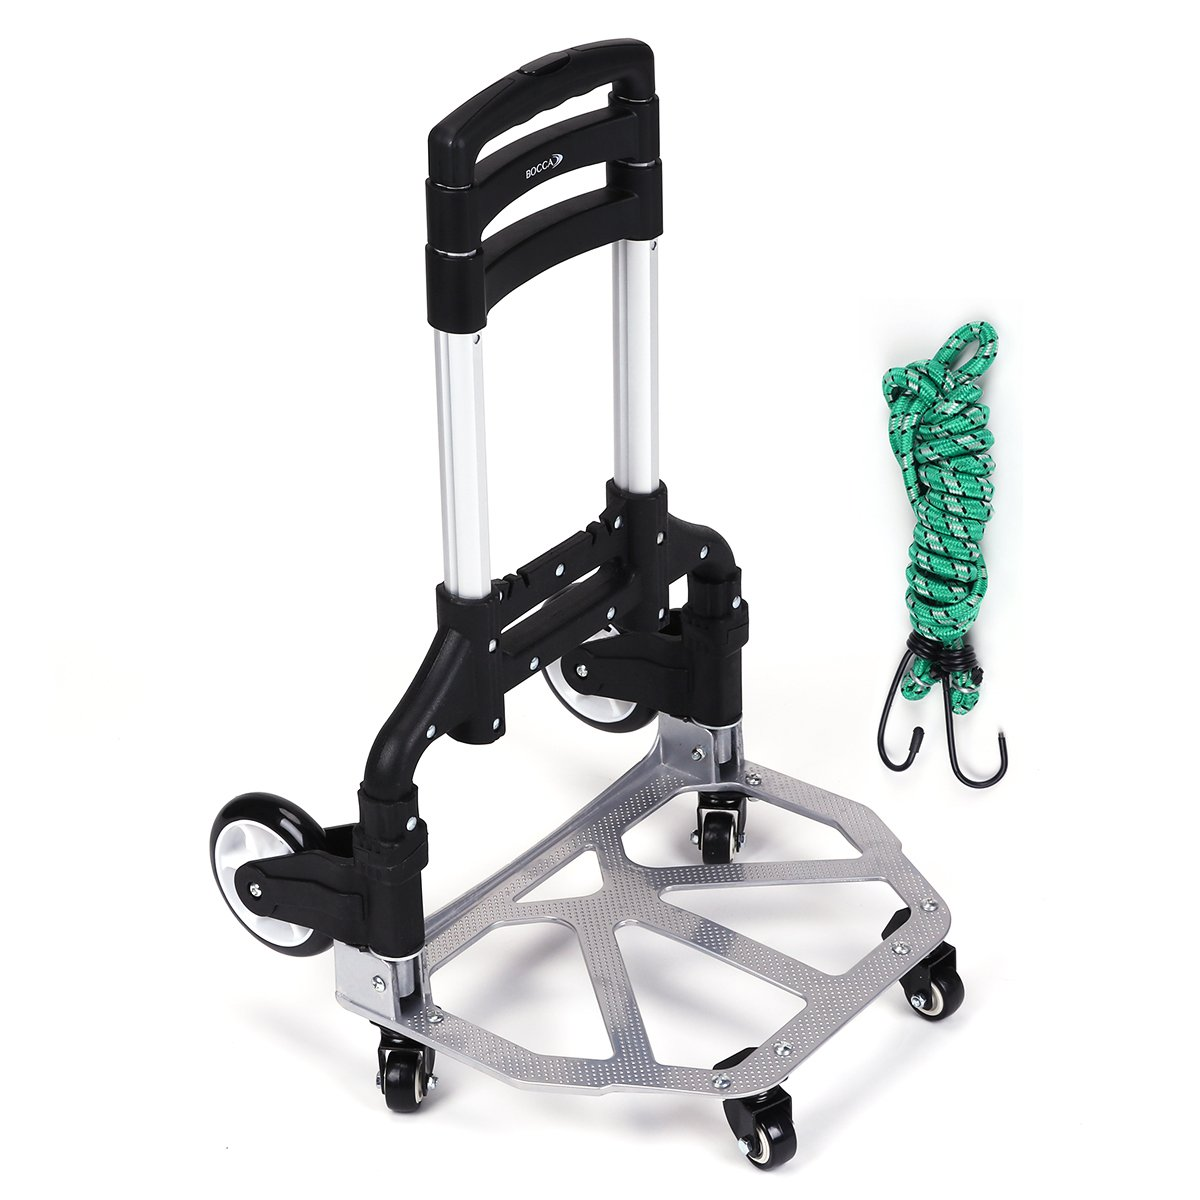 Bocca Folding Hand Truck, 165 Capacity Aluminum Portable Height Adjustable Utility Cart with Wheels (6 Wheels)